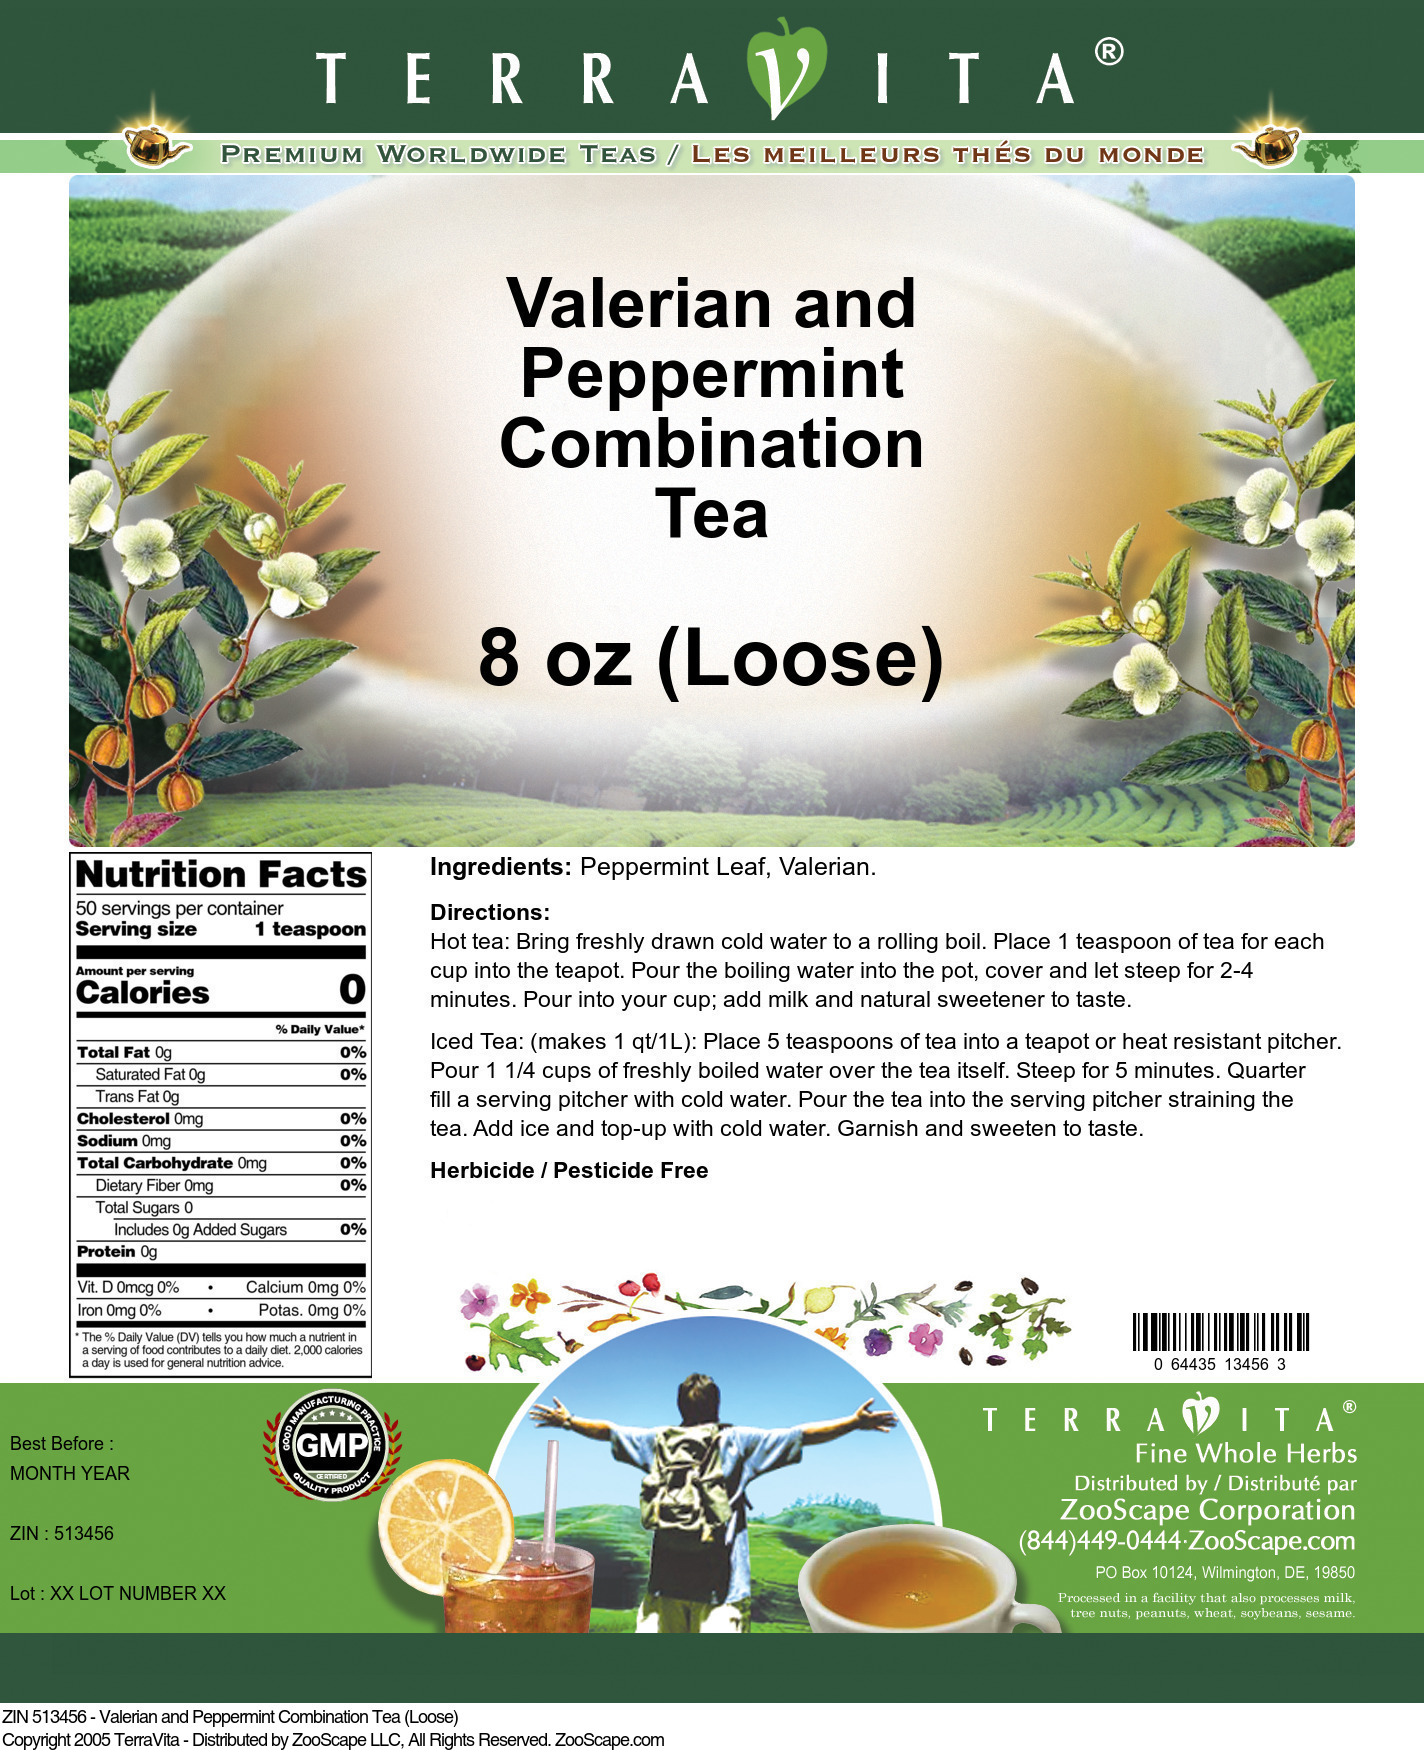 Valerian and Peppermint Combination Tea (Loose)